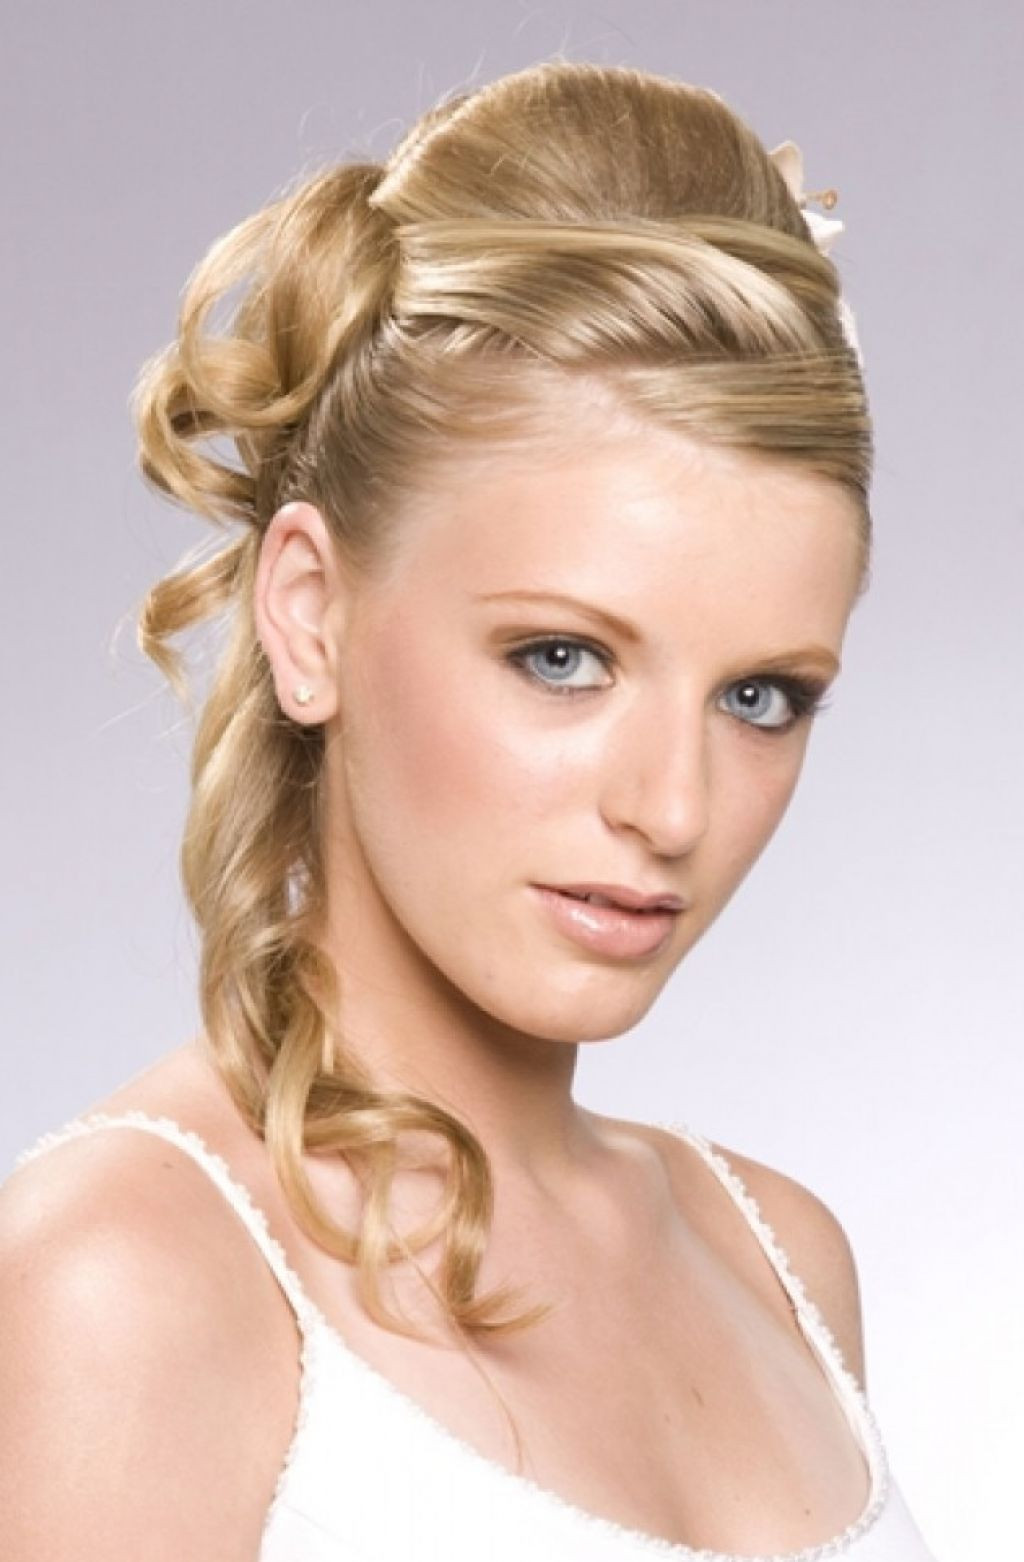 Haircuts For Female  30 Gorgeous Wedding Hairstyles ideas for Women MagMent